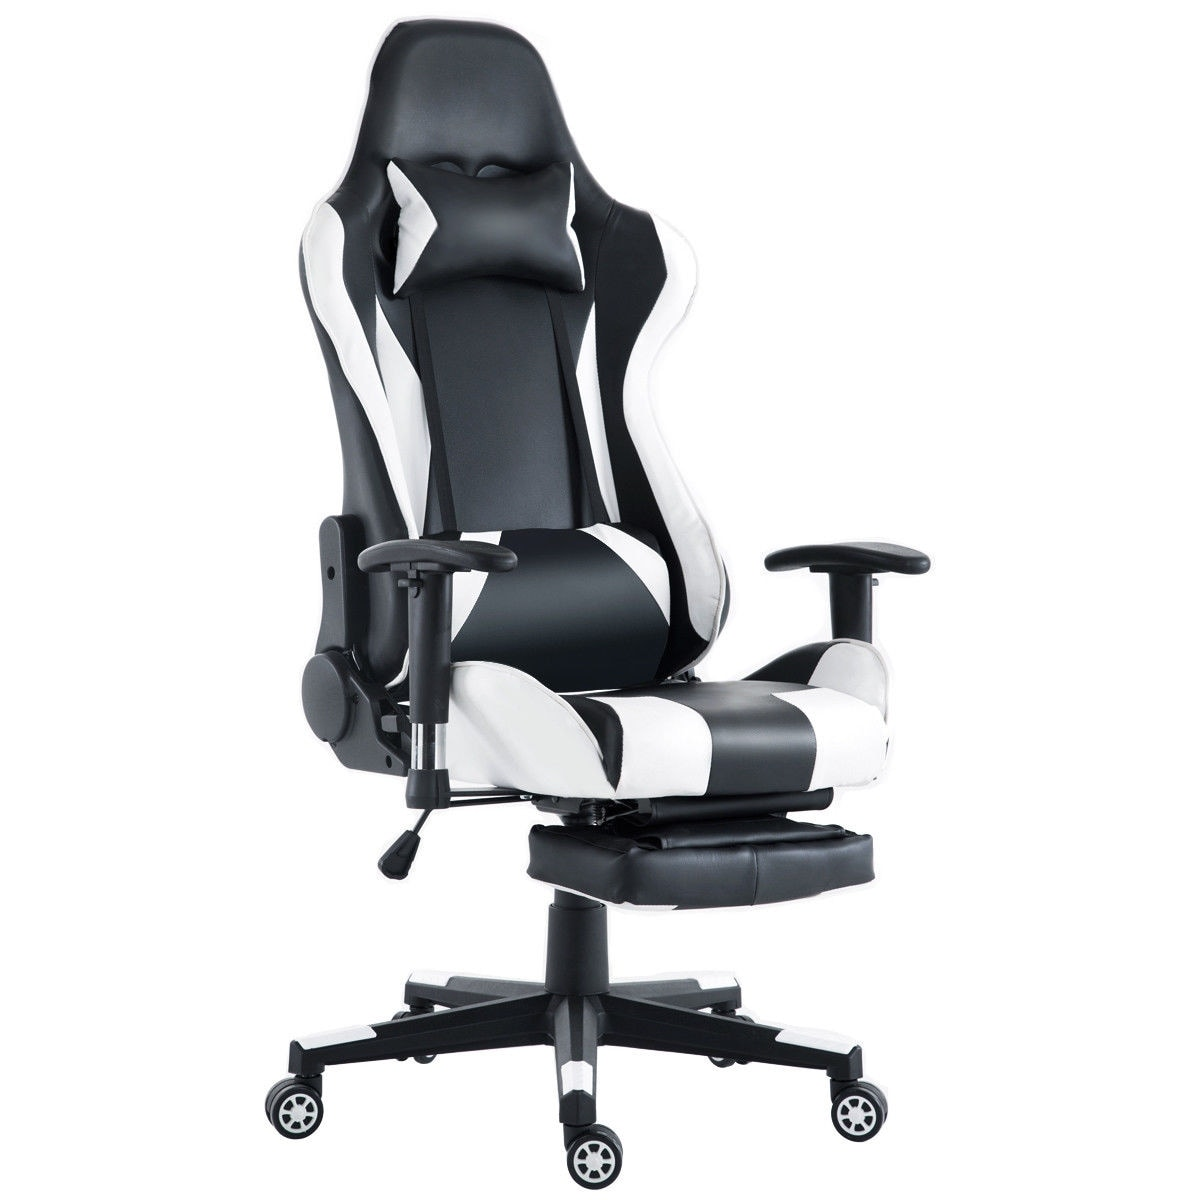 reclining gaming chair cover rentals vaughan shop costway high back racing recliner office w lumbar support footrest